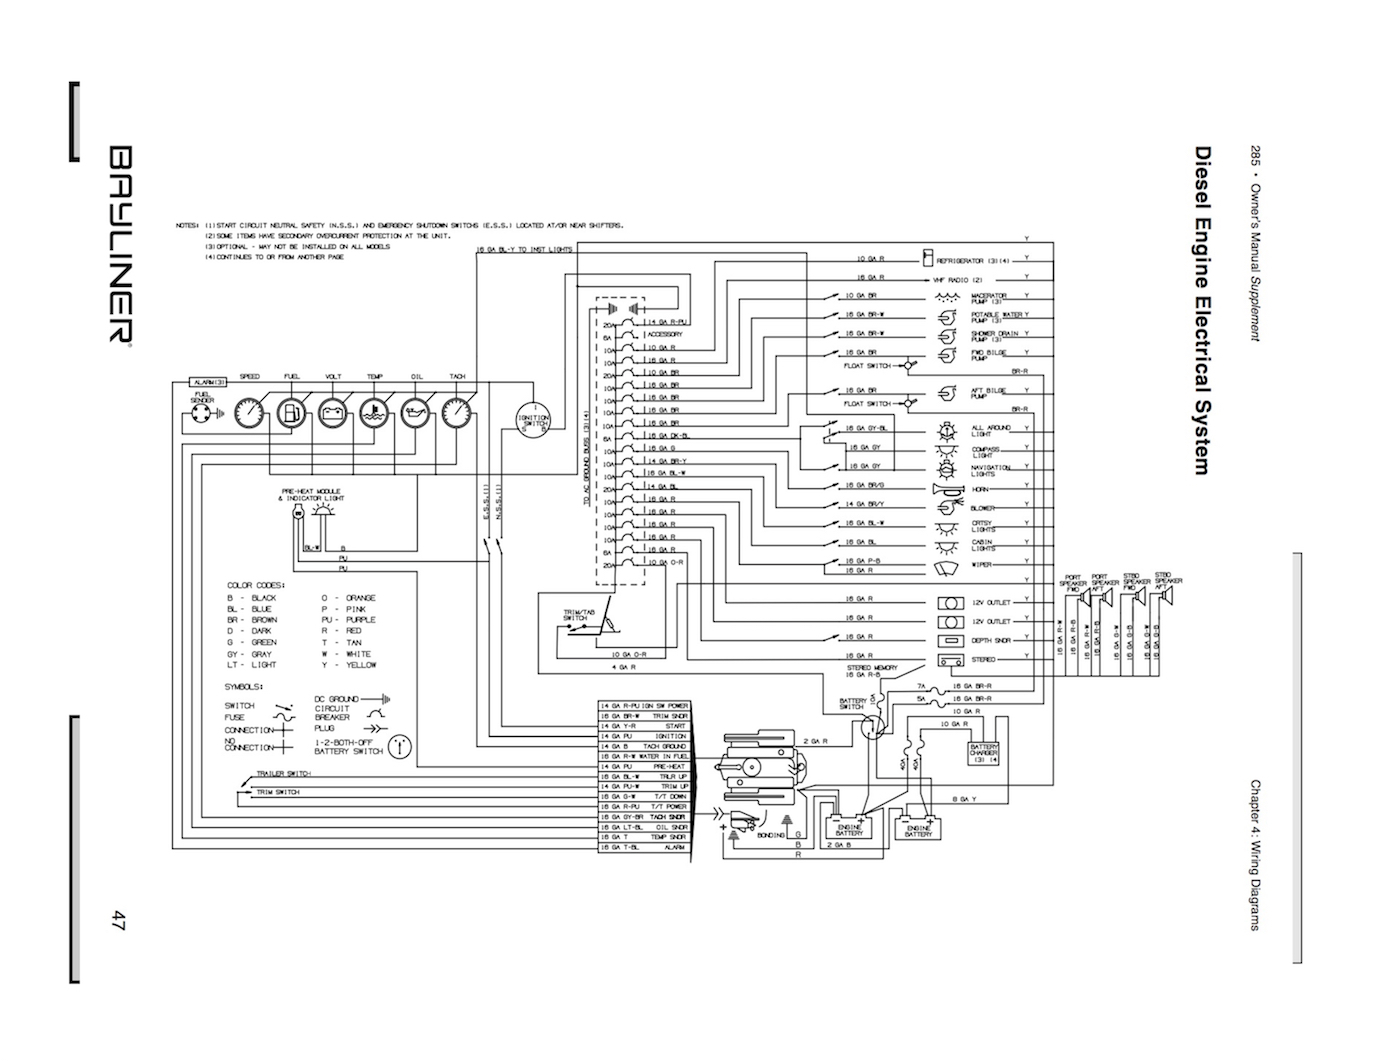 Remote Spotlight Wiring Diagram - Wiring Diagrams on